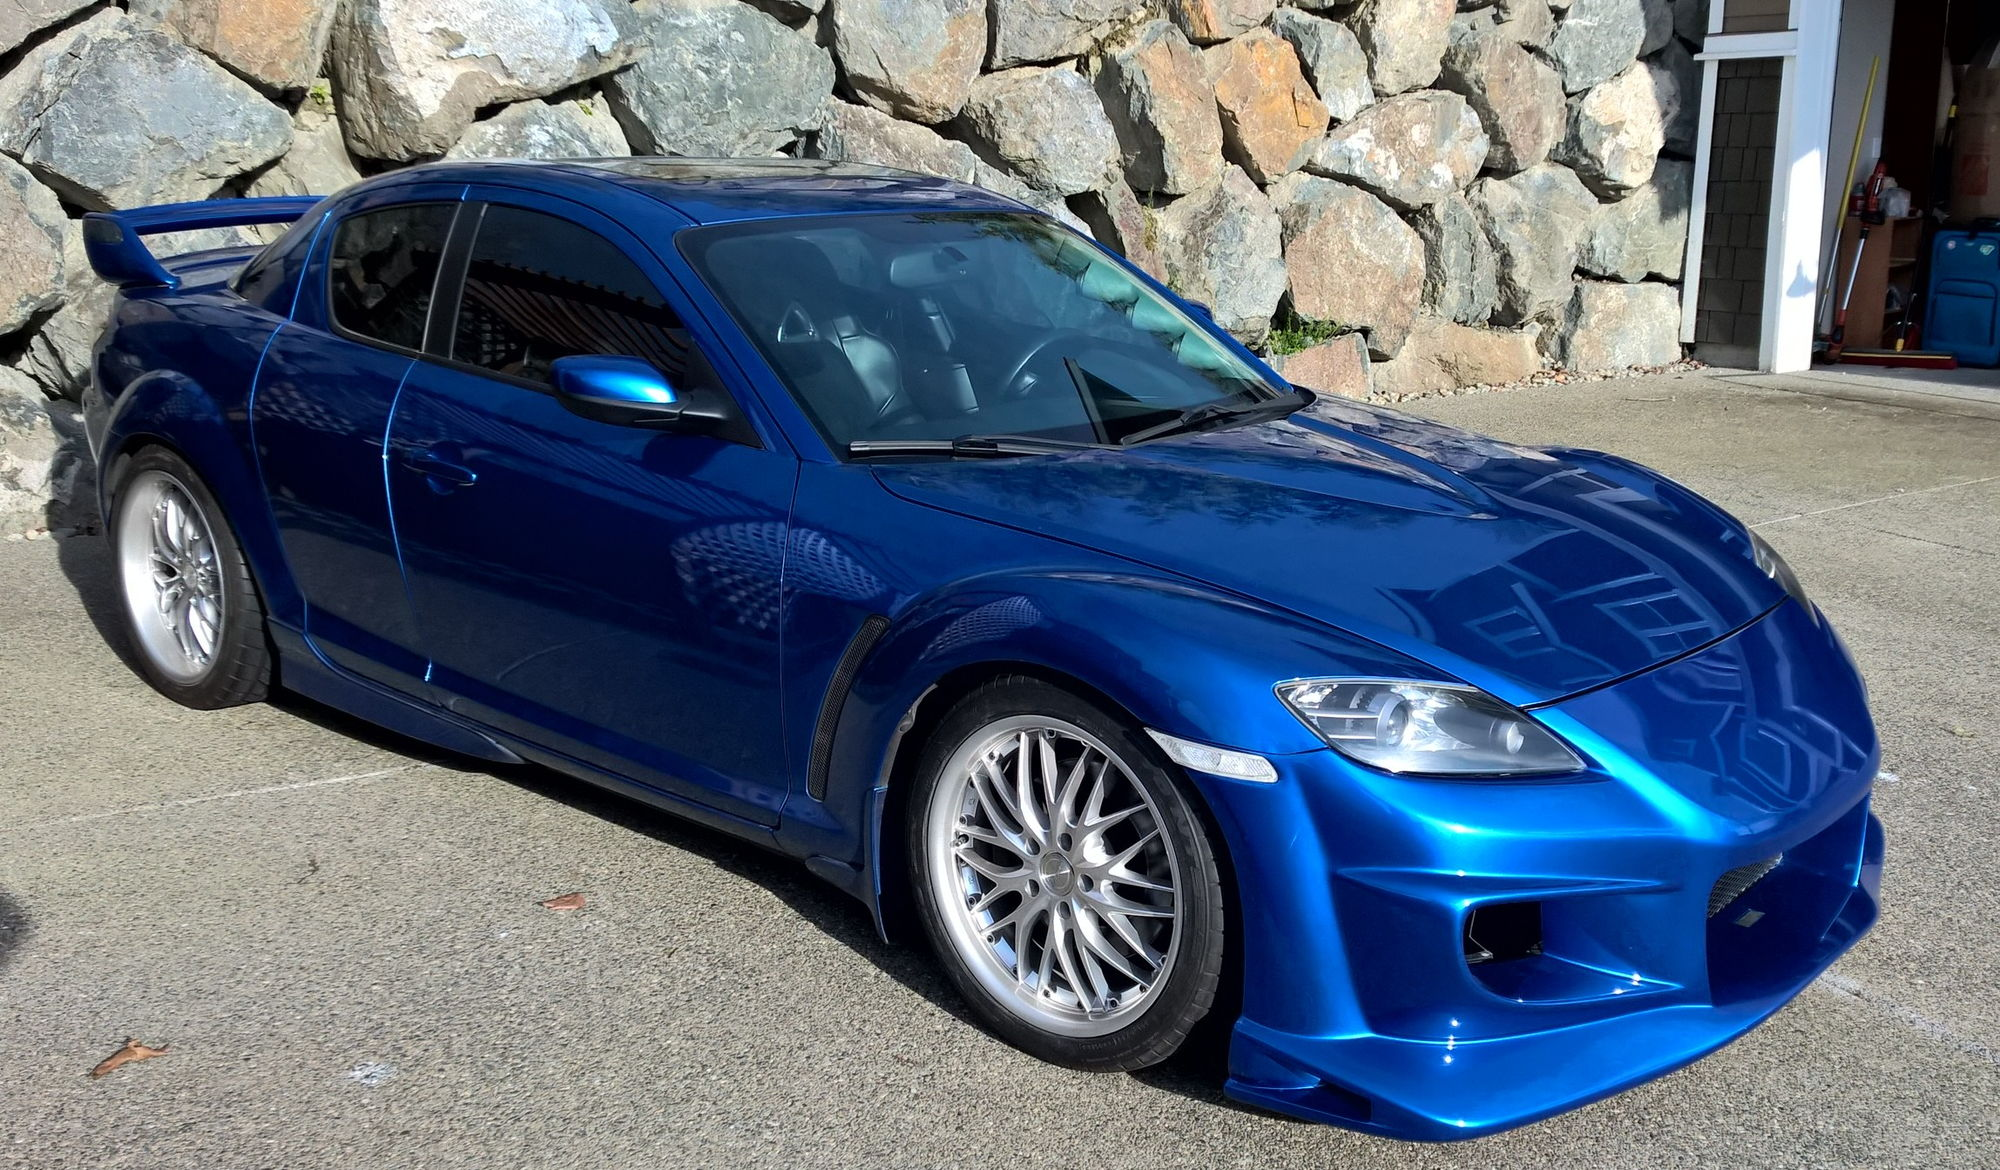 2004 Mazda Rx 8 For Sale 12k In Aftermarket Parts